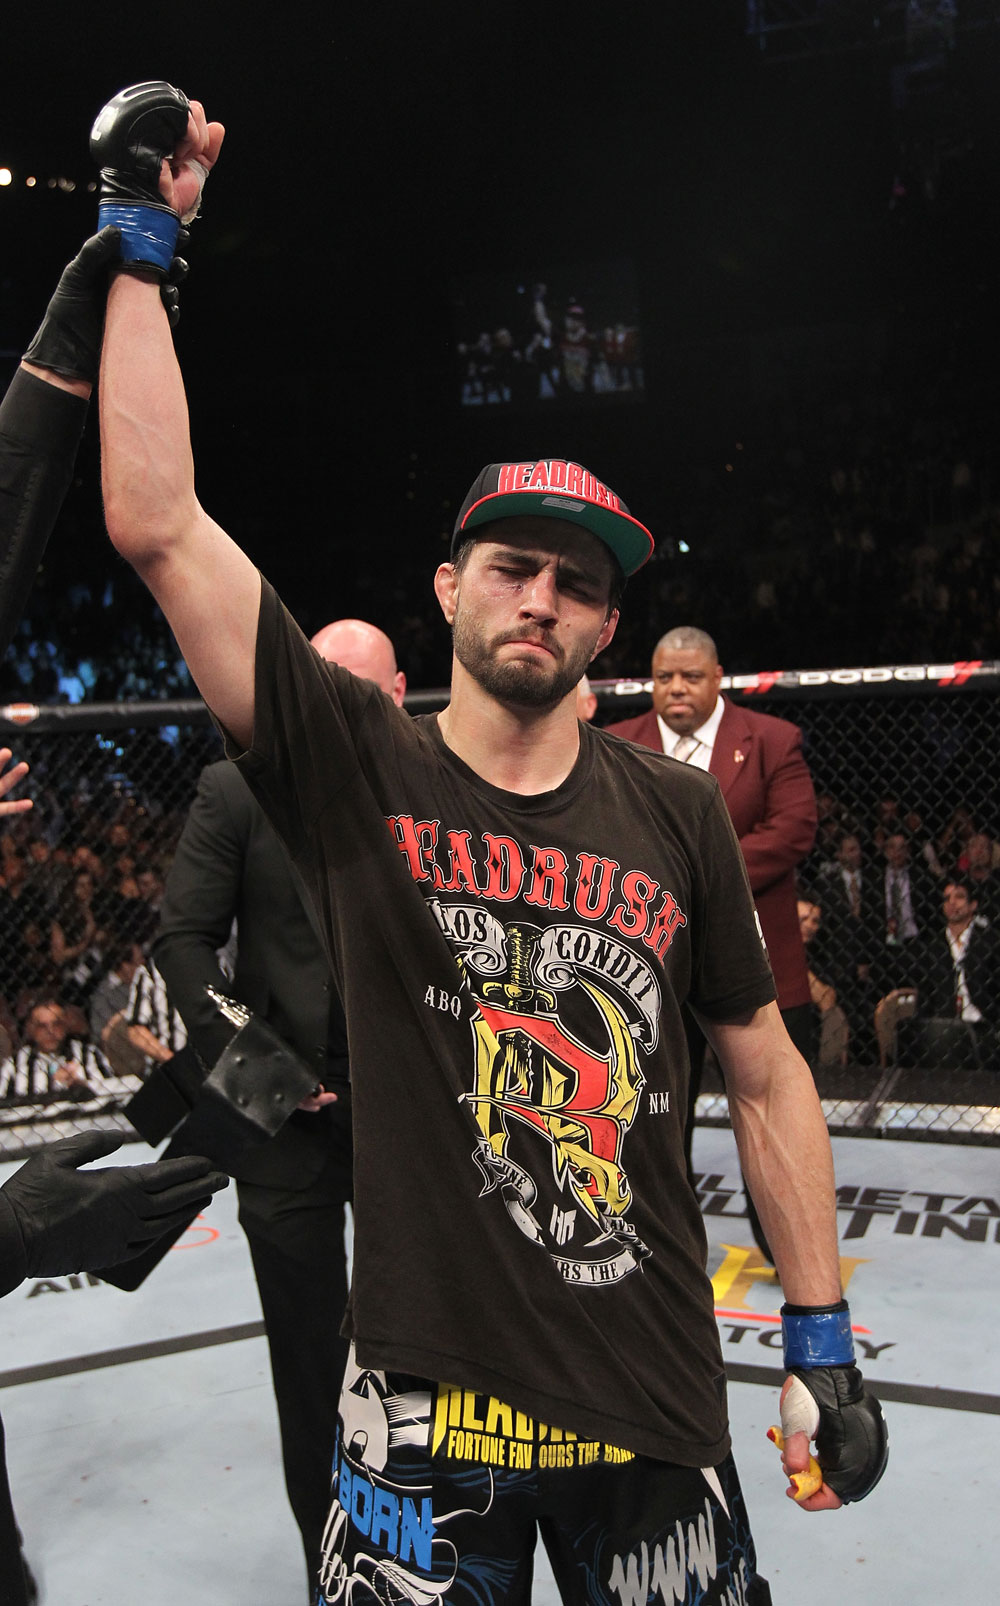 LAS VEGAS - FEBRUARY 04:  Carlos Condit is declared the winner in his fight with Nick Diaz during the UFC 143 event at Mandalay Bay Events Center on February 4, 2012 in Las Vegas, Nevada.  (Photo by Nick Laham/Zuffa LLC/Zuffa LLC via Getty Images) *** Local Caption *** Carlos Condit